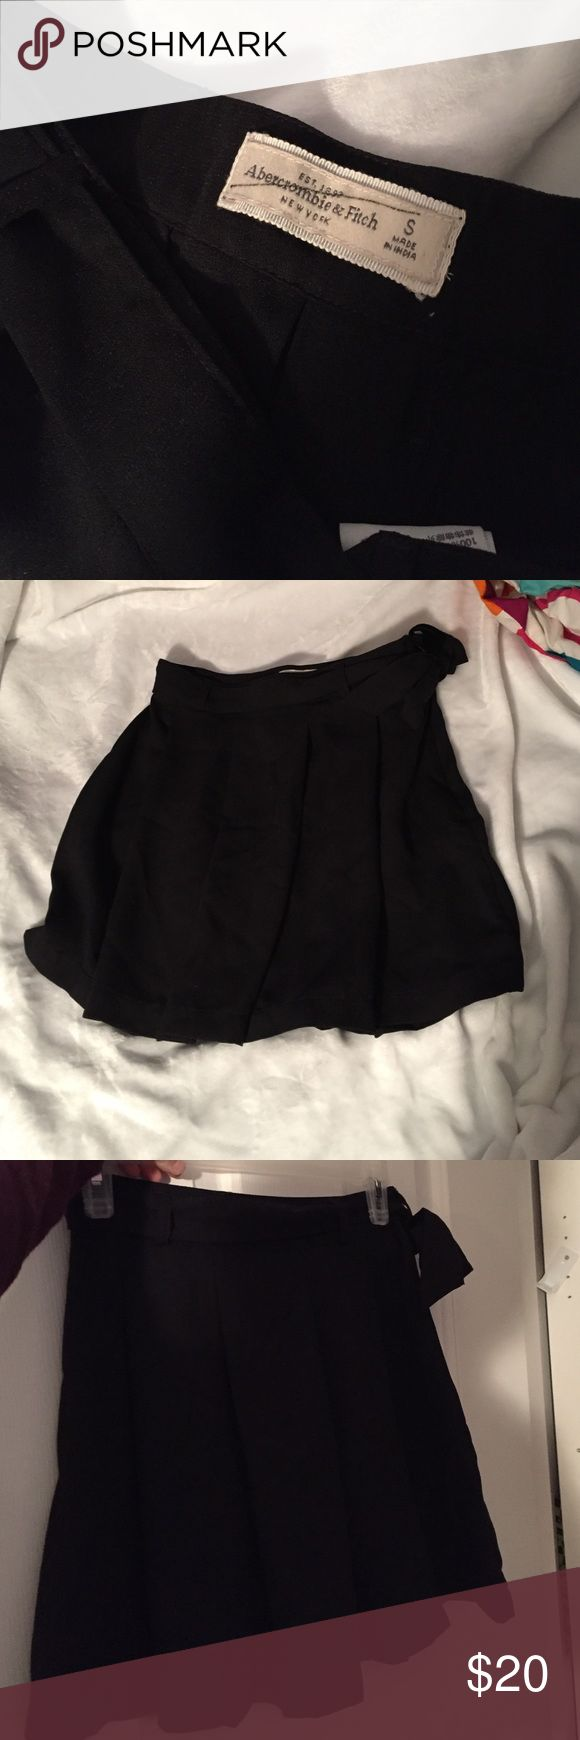 BNWT Abercrombie and Fitch Black Pleaded Skirt BNWT Abercrombie and Fitch Skirt size small. Color: black size: small Abercrombie & Fitch Skirts Mini